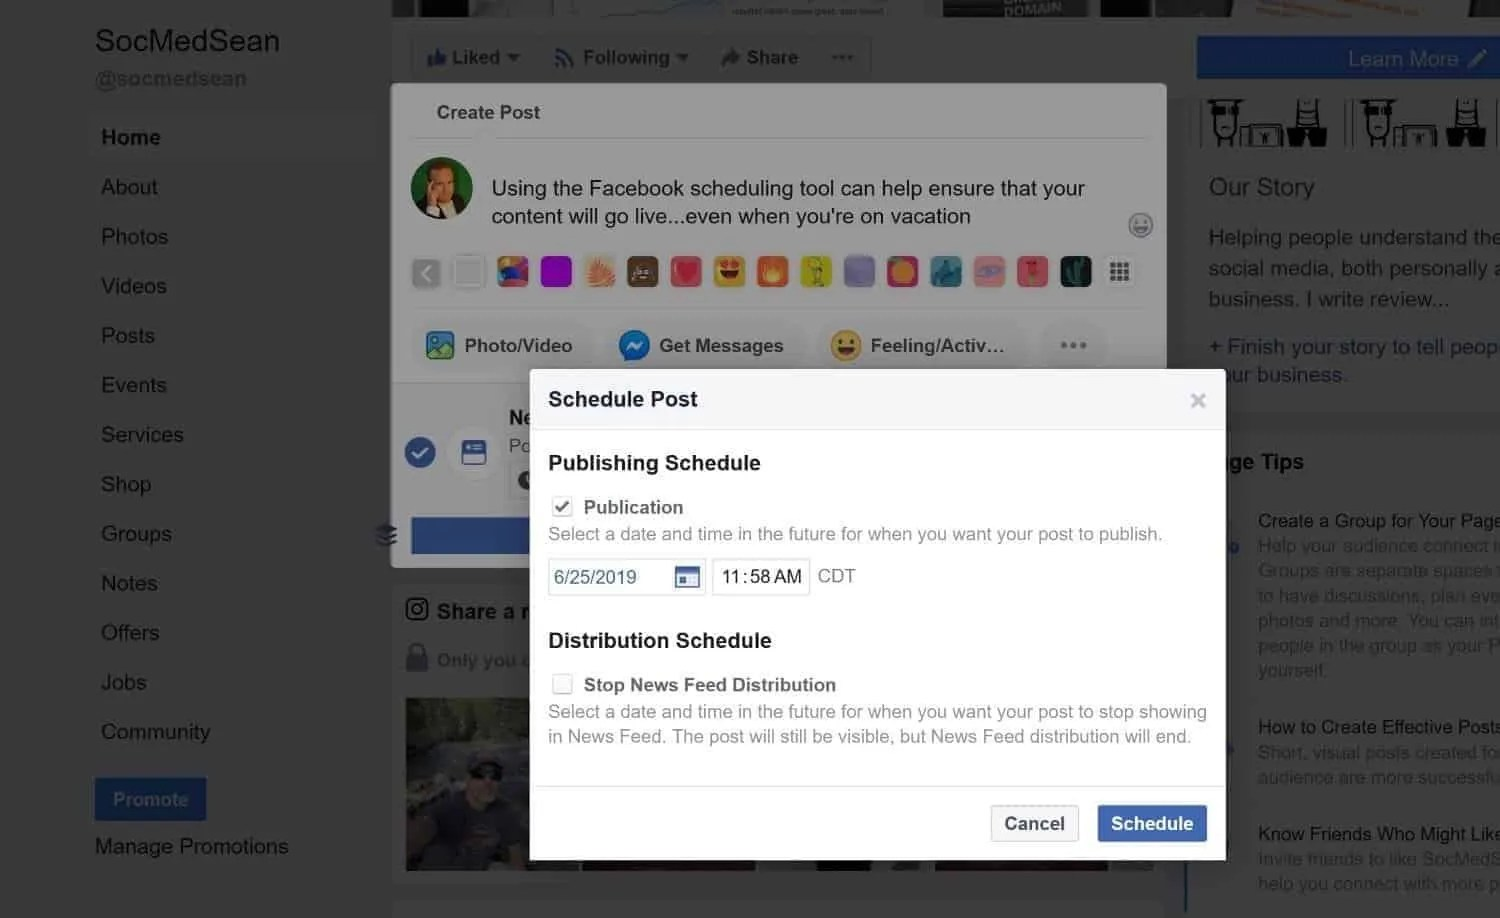 The Facebook scheduler can help you publish content, even while you are on vacation